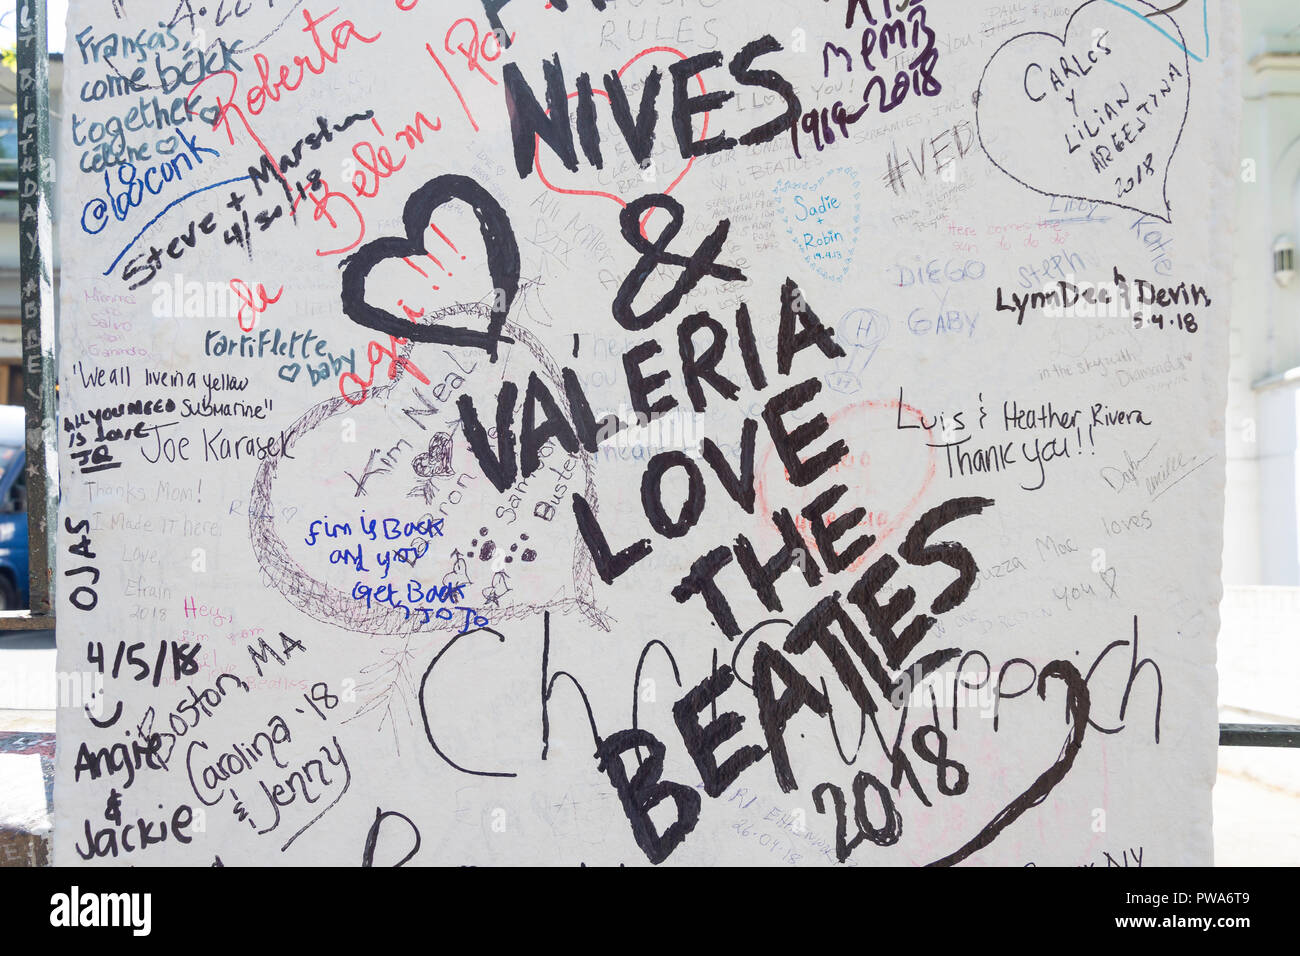 The Beatles fan graffiti on column, Abbey Road, St John's Wood, City of Westminster, Greater London, England, United Kingdom - Stock Image